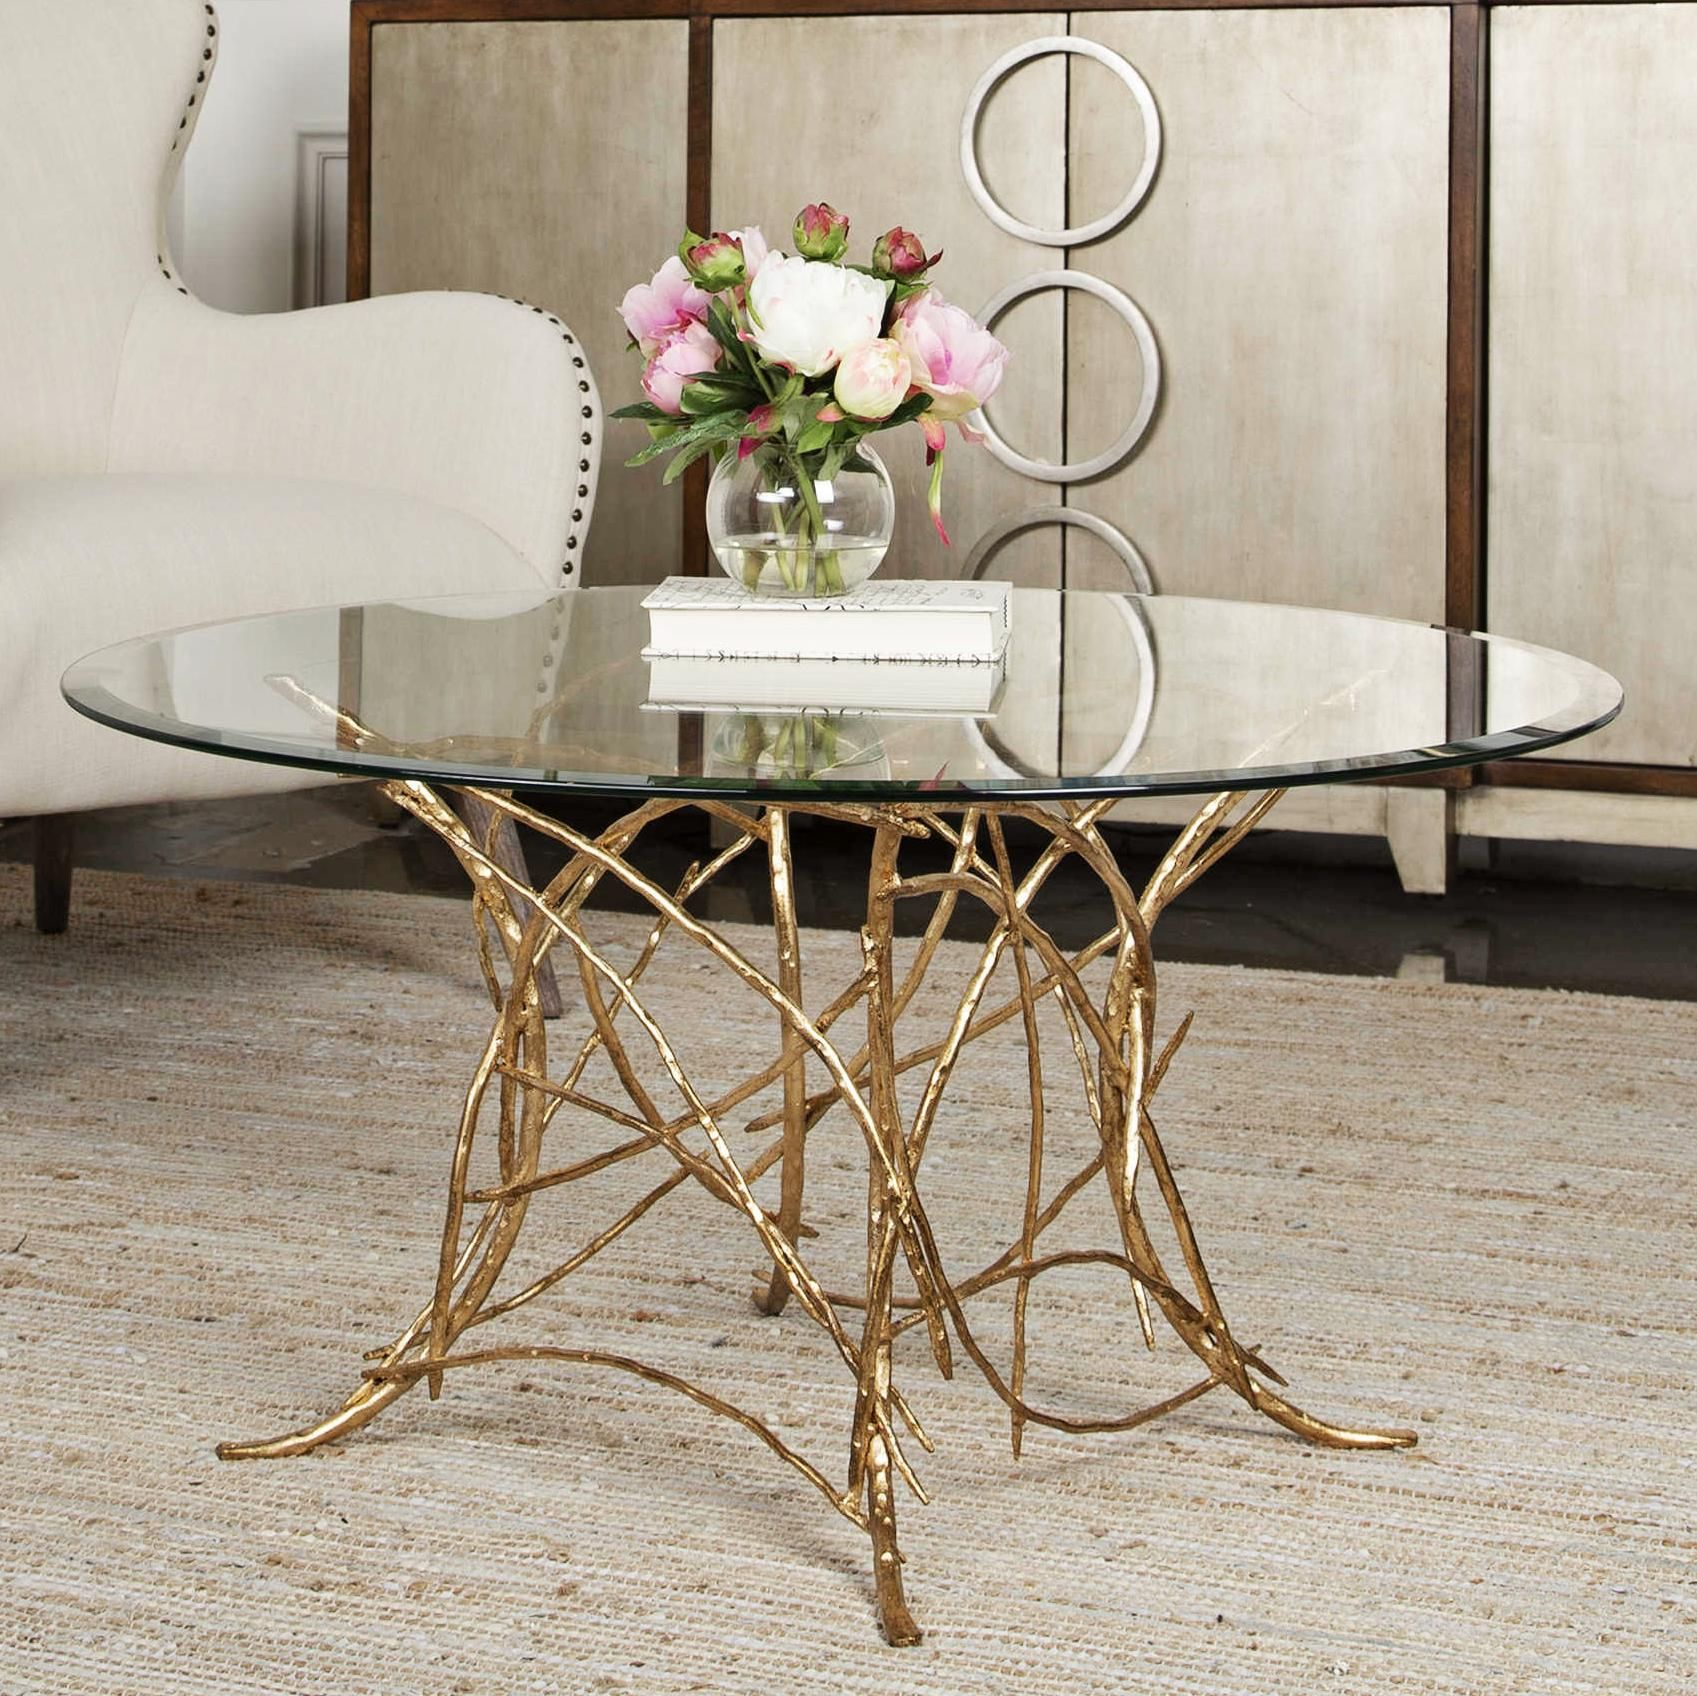 Uttermost Amoret 36 Inch Wide Gold Leaf Branch Coffee Table In 2020 Coffee Table Furniture Contemporary Coffee Table Coffee Table Design